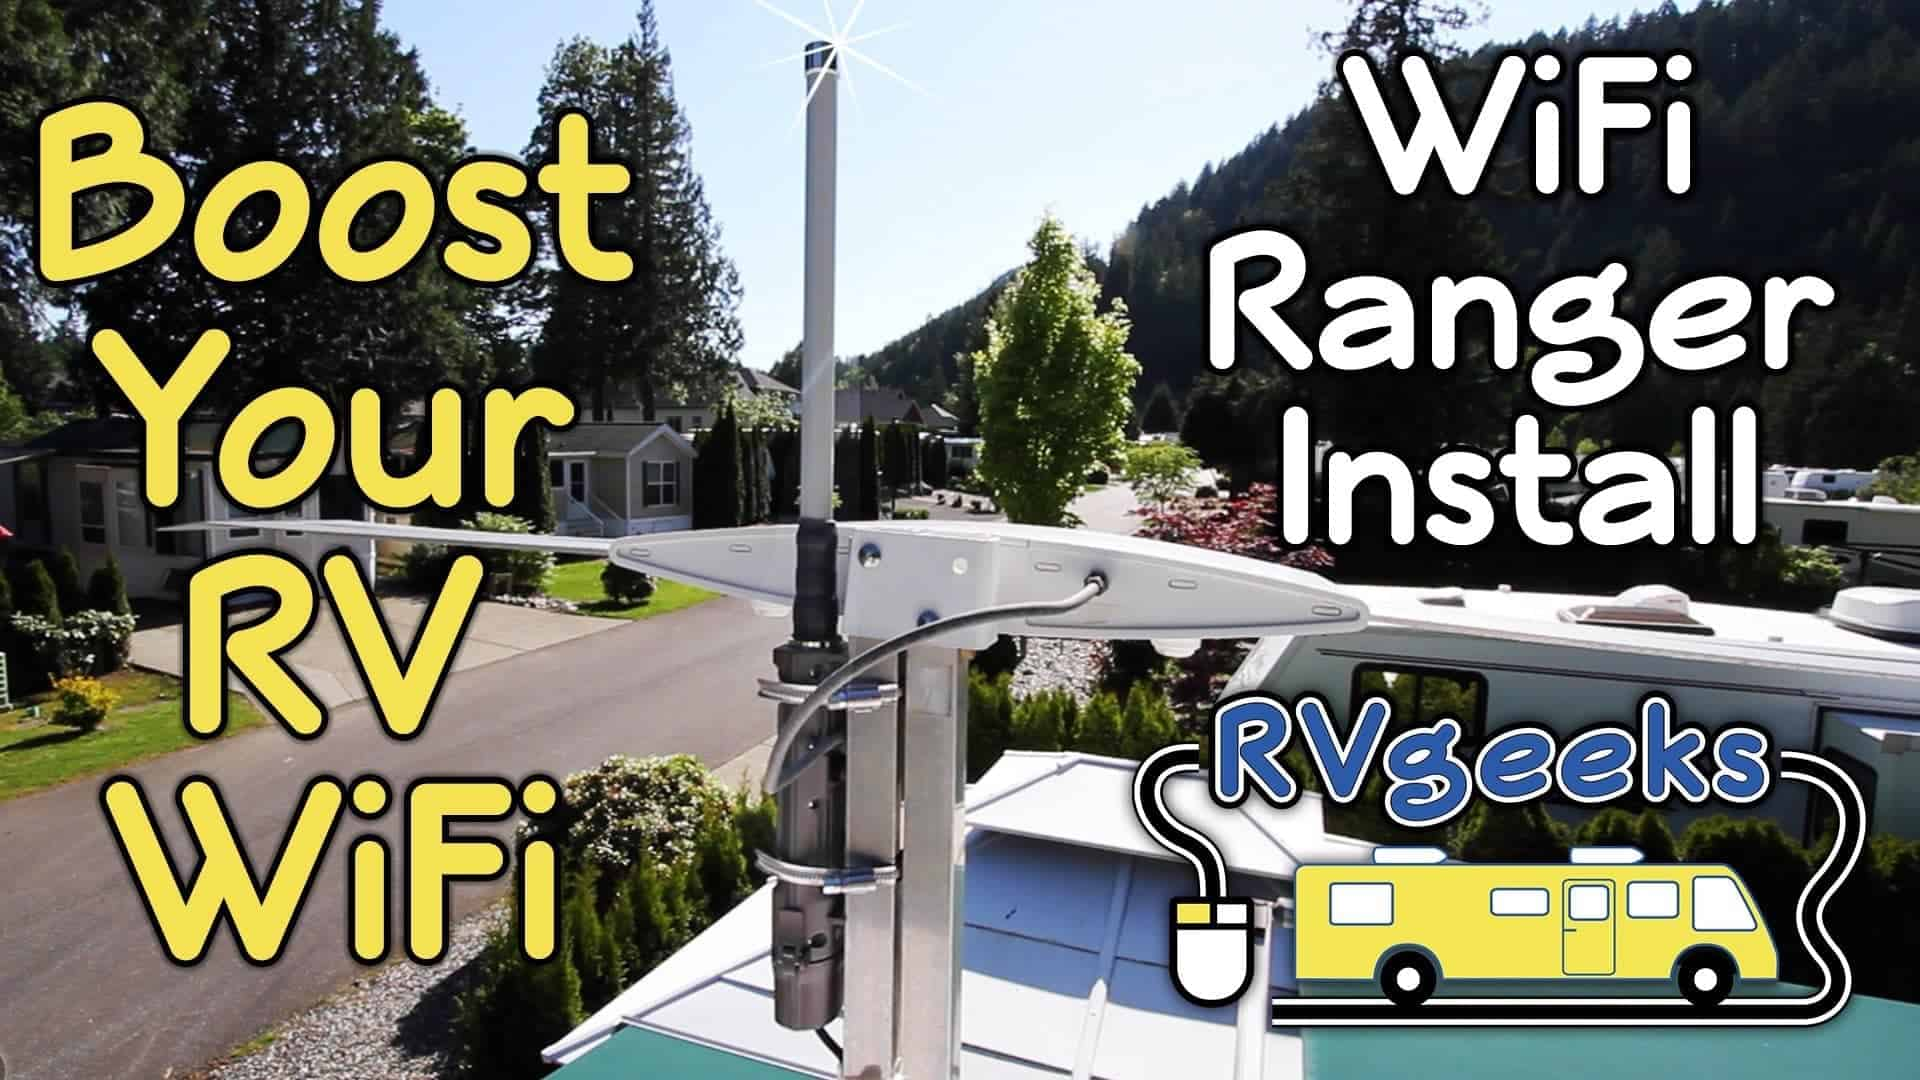 Boost Your RV WiFi Signal – Installing a WiFiRanger Elite Pack